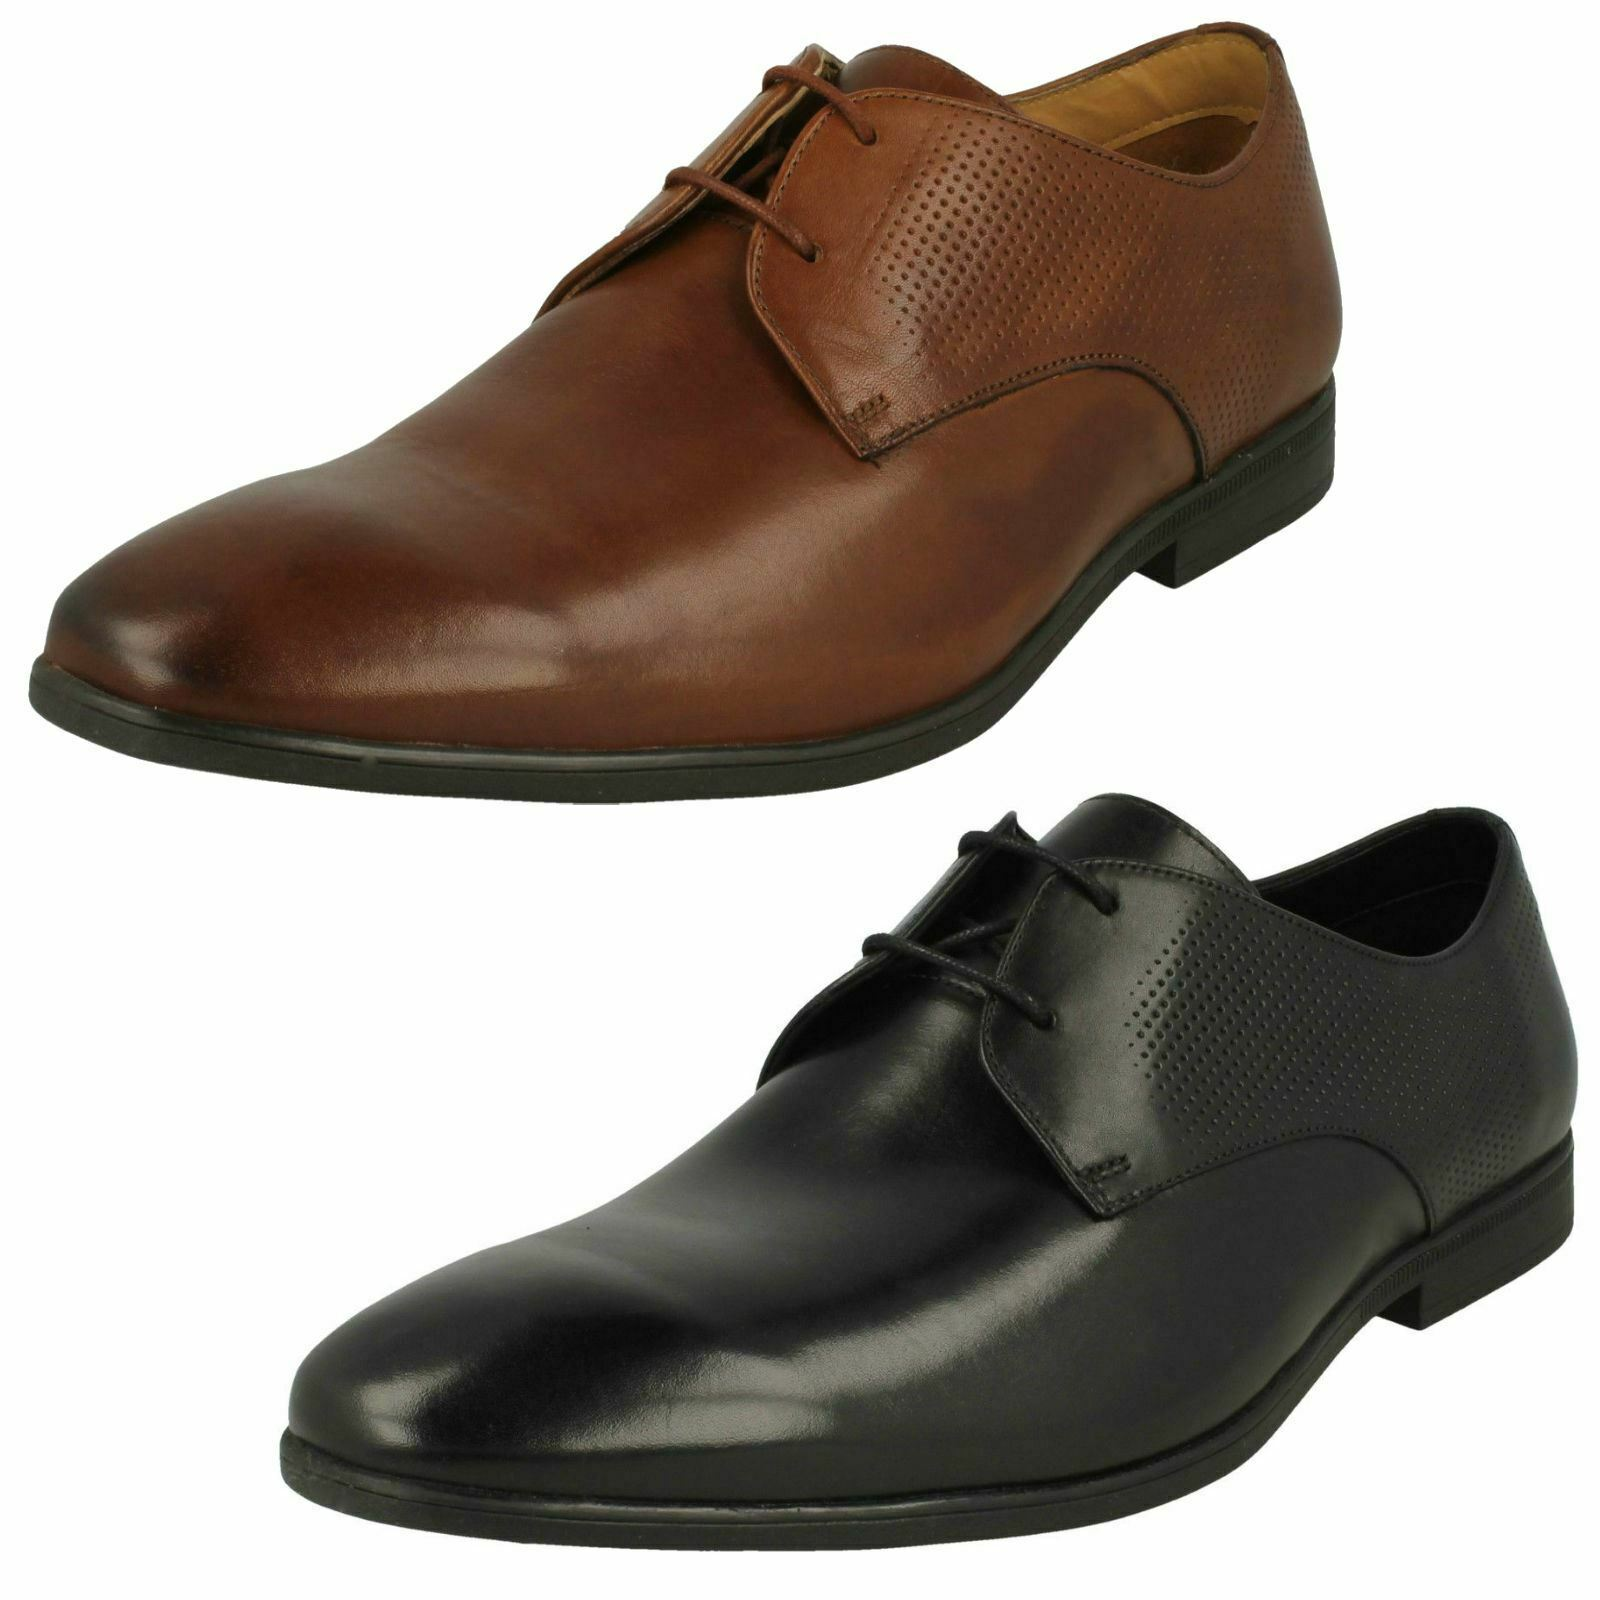 Up Lace Formal herren Bampton schuhe Walk aac12svdn85853